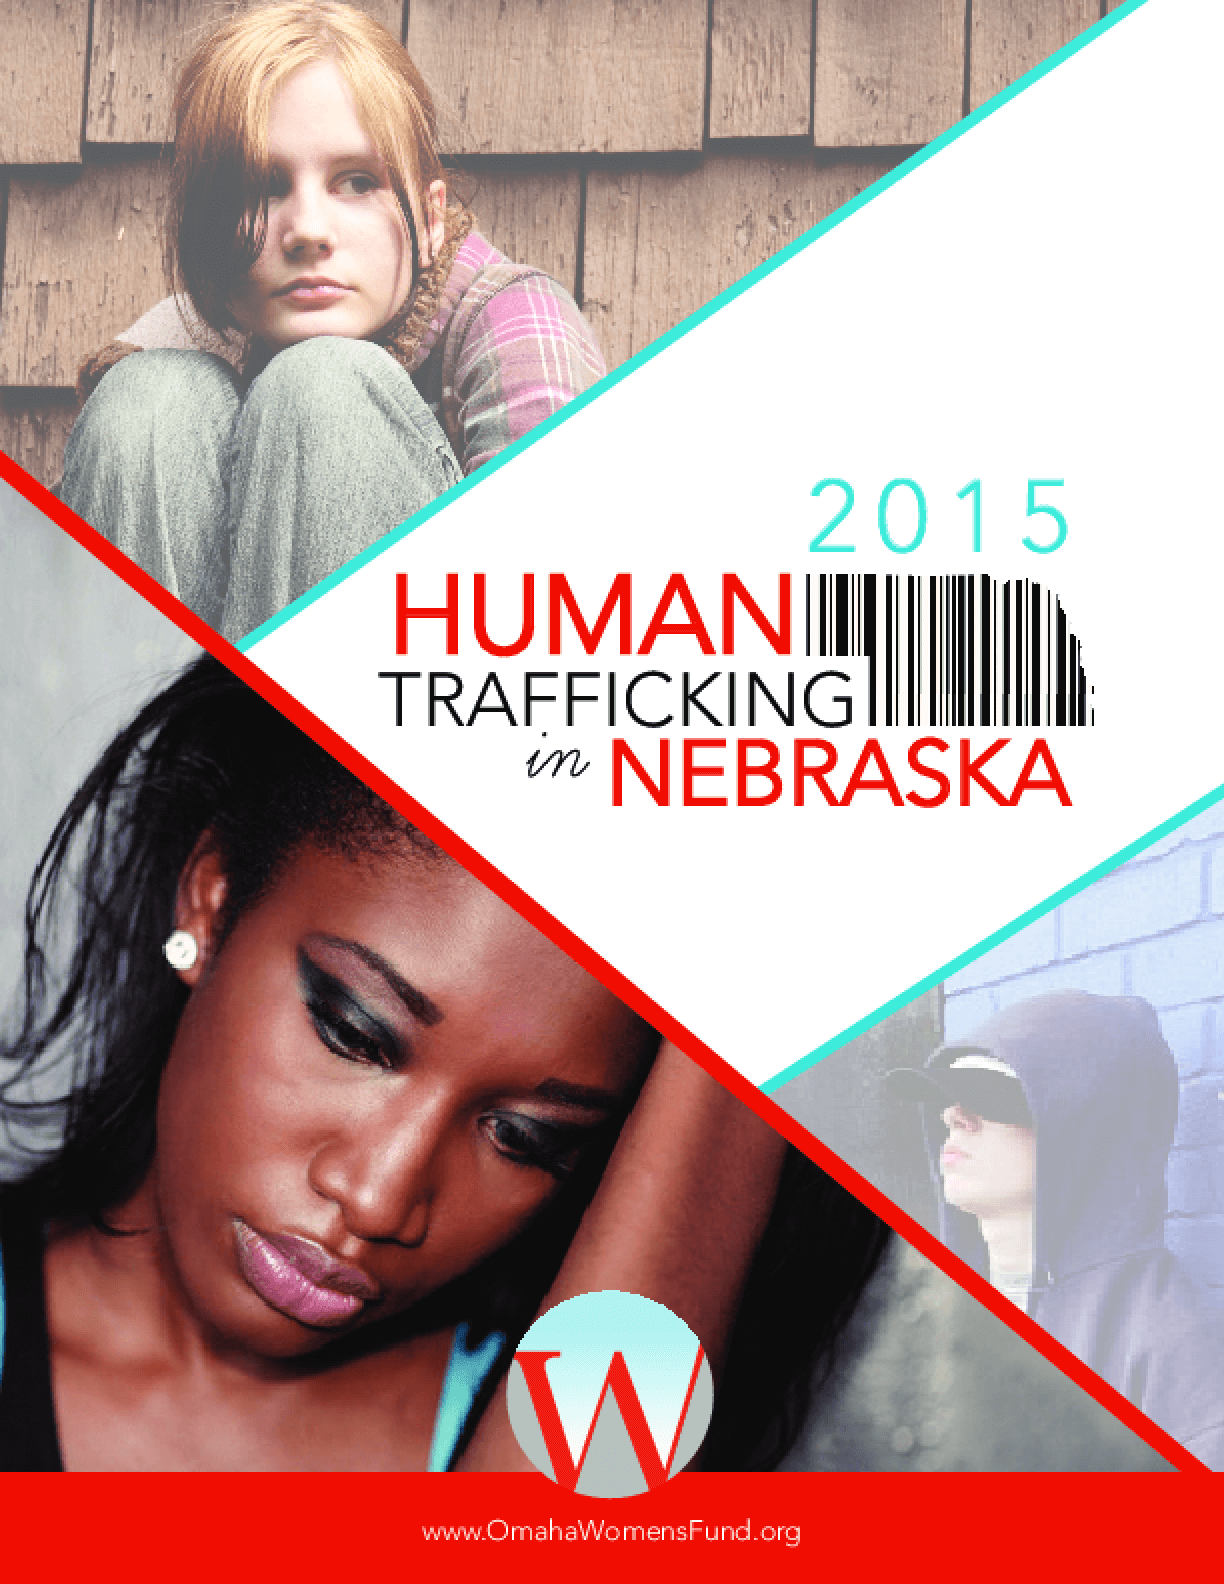 2015 Human Trafficking in Nebraska